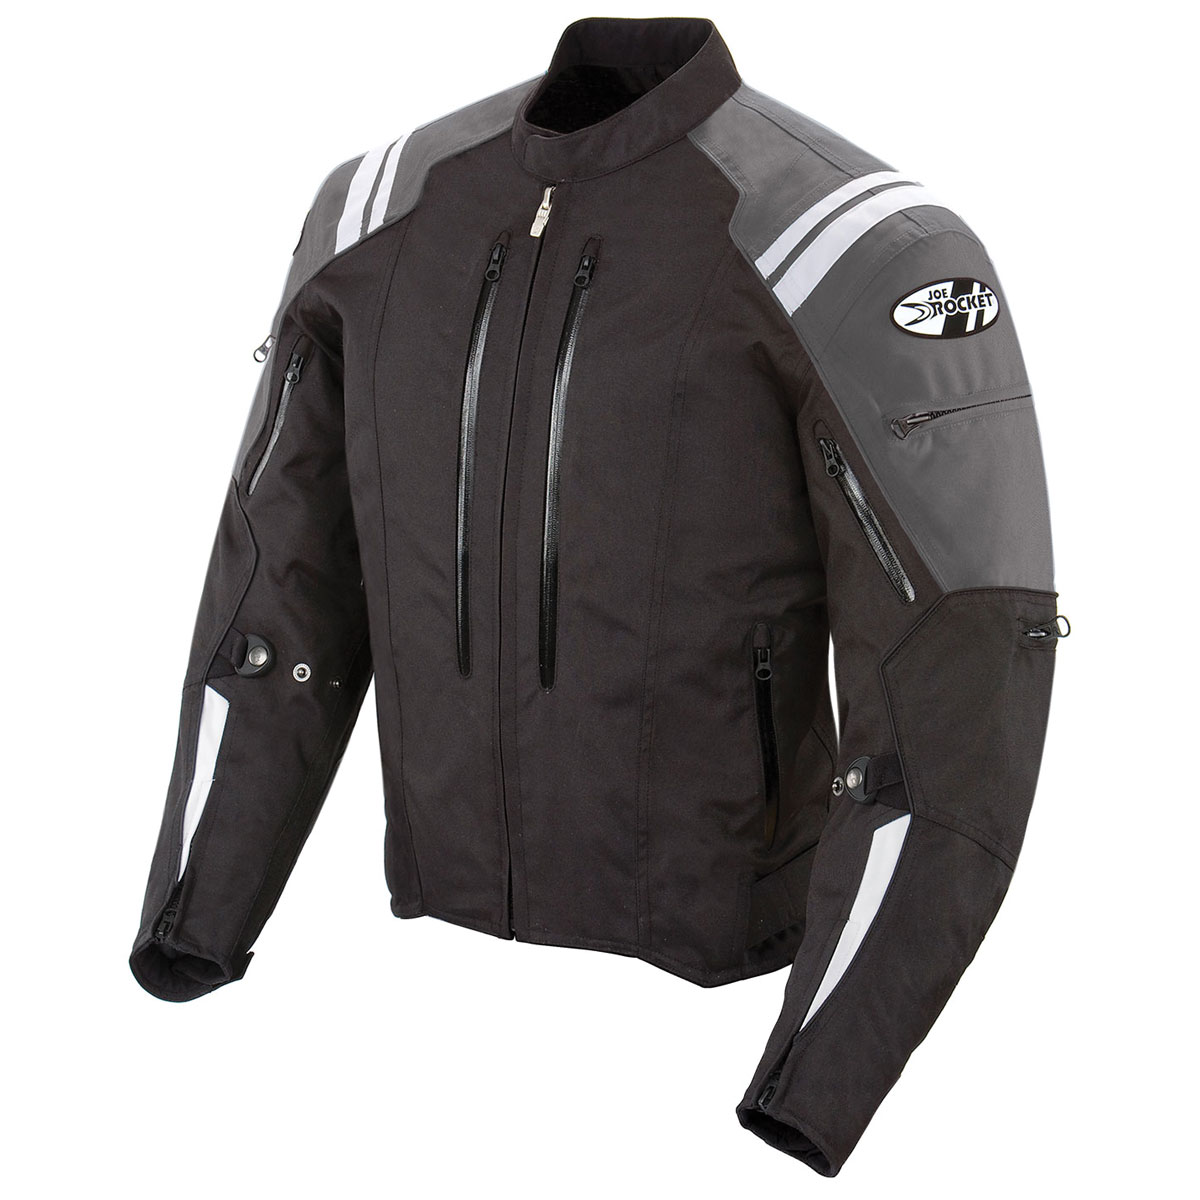 Joe Rocket Men's Atomic 4.0 Waterproof Gray/Black Jacket